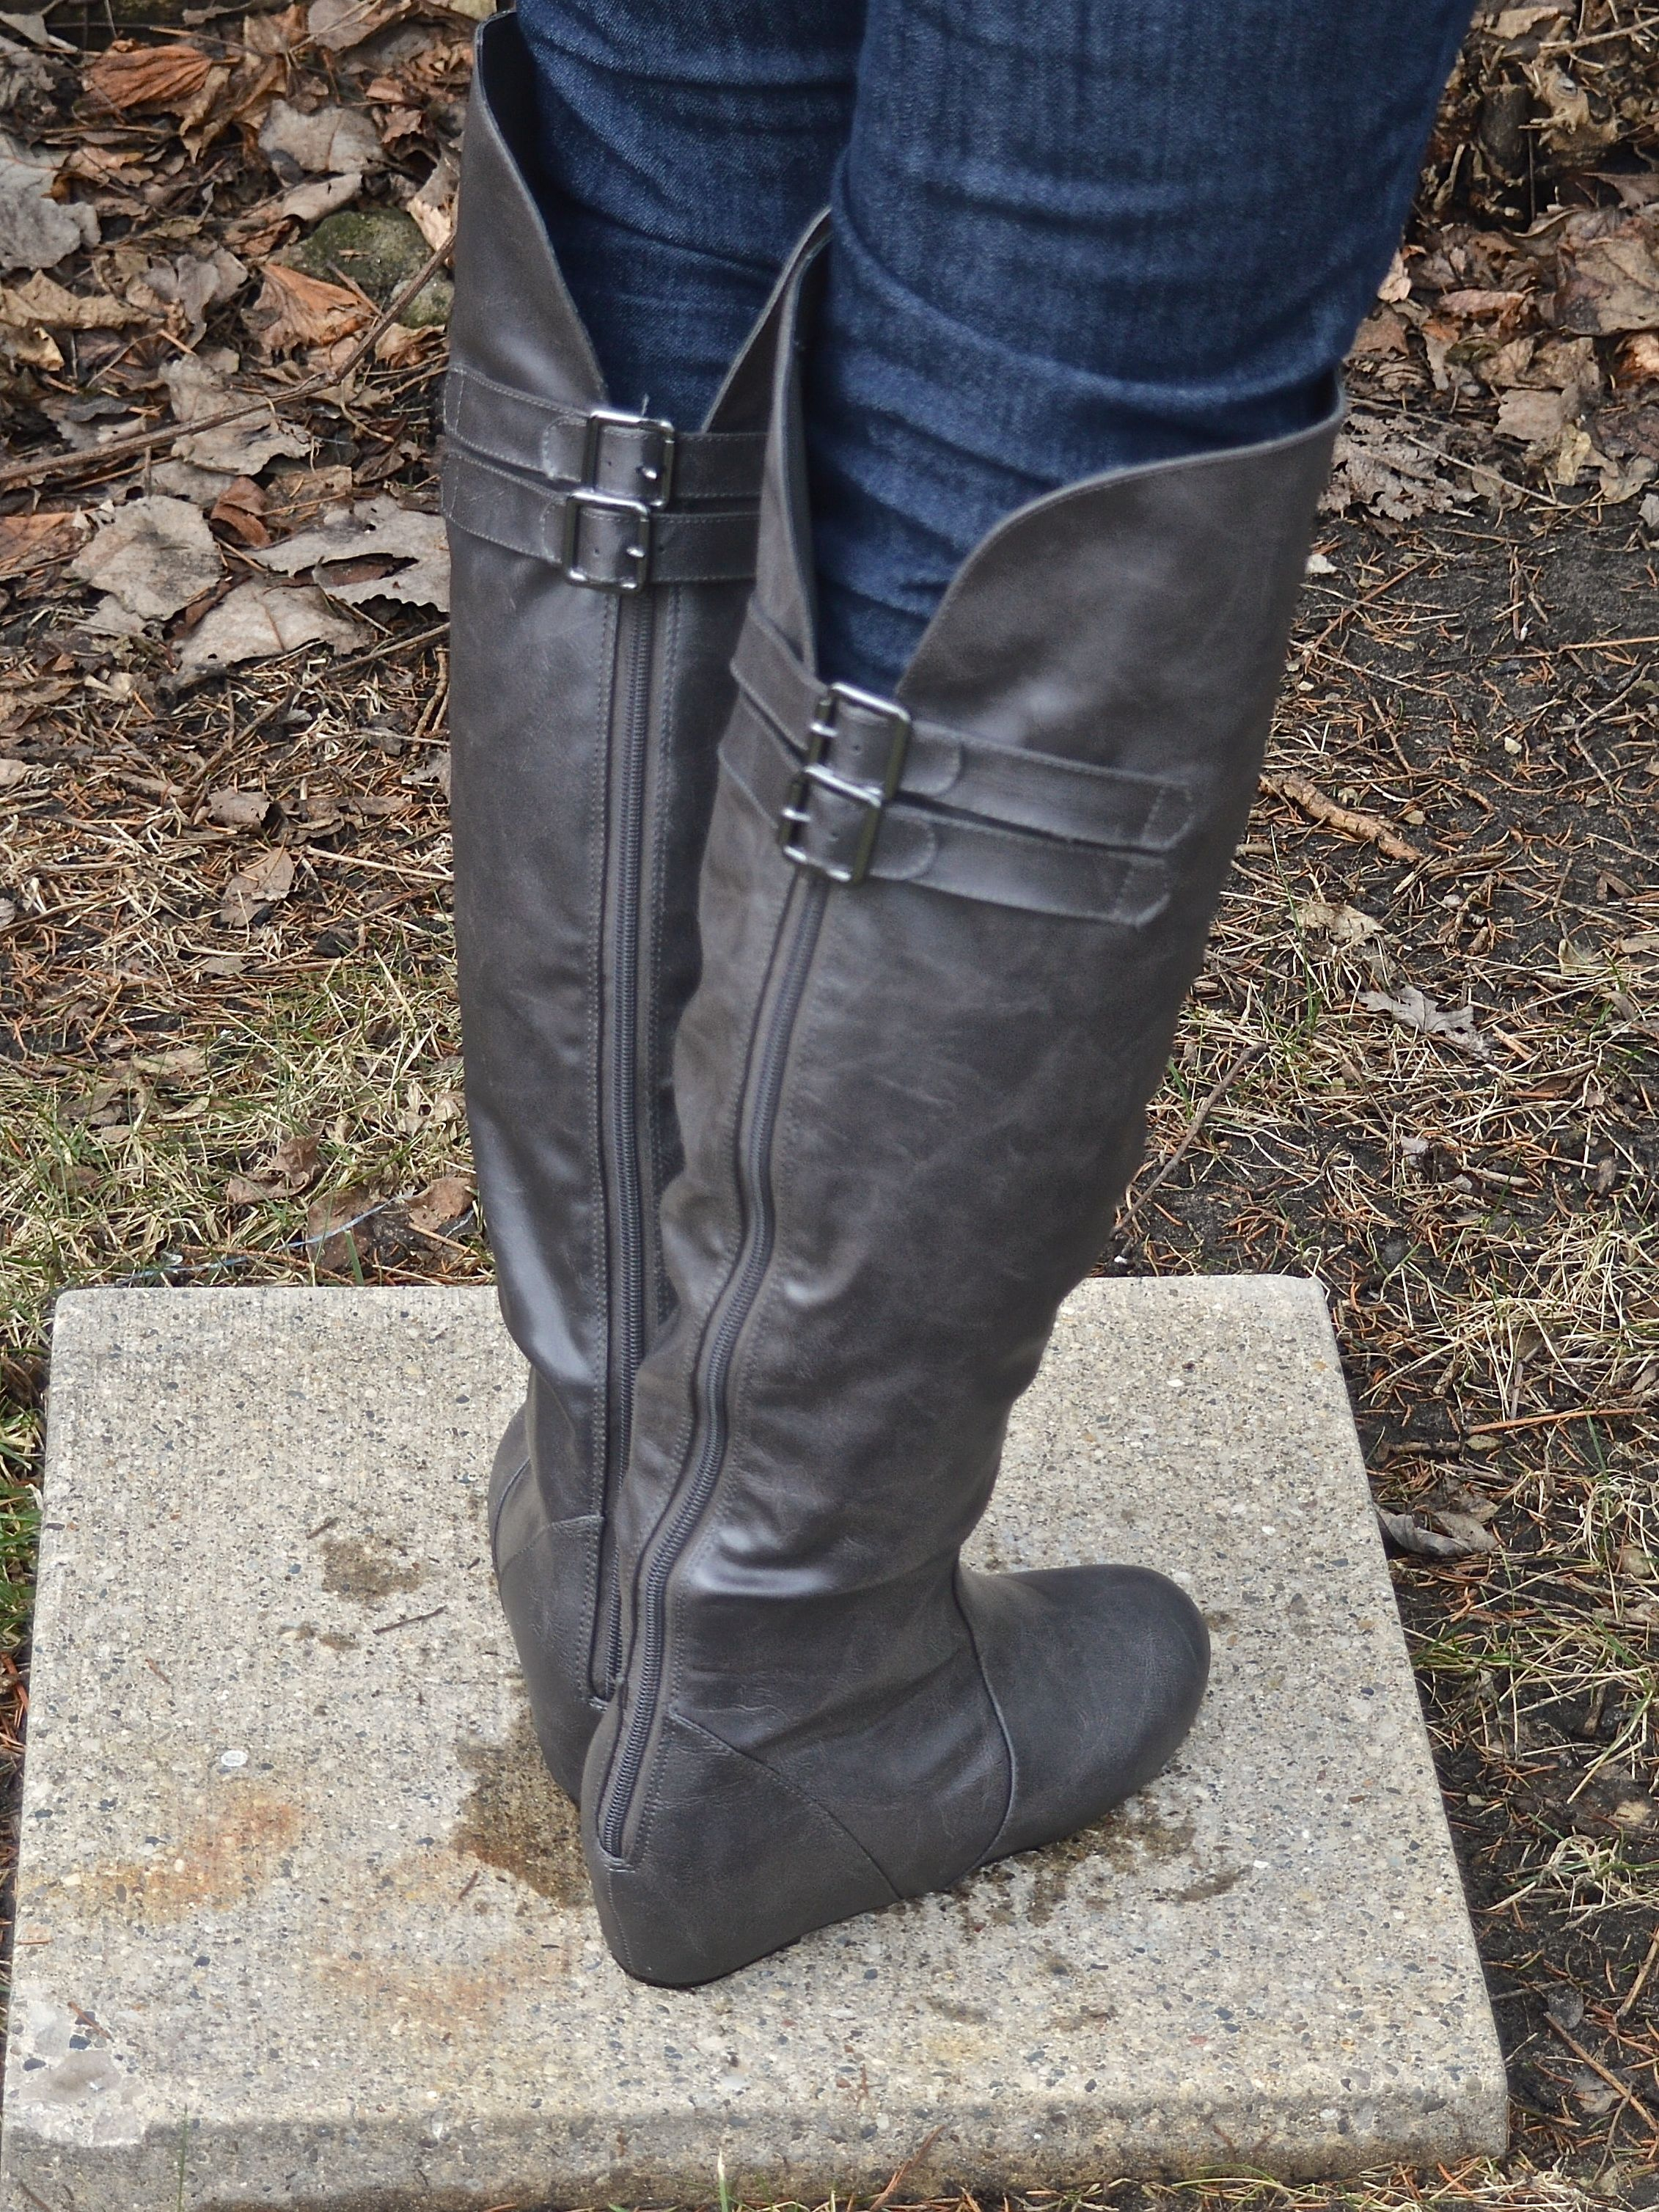 awesome accessories - over the knee boots